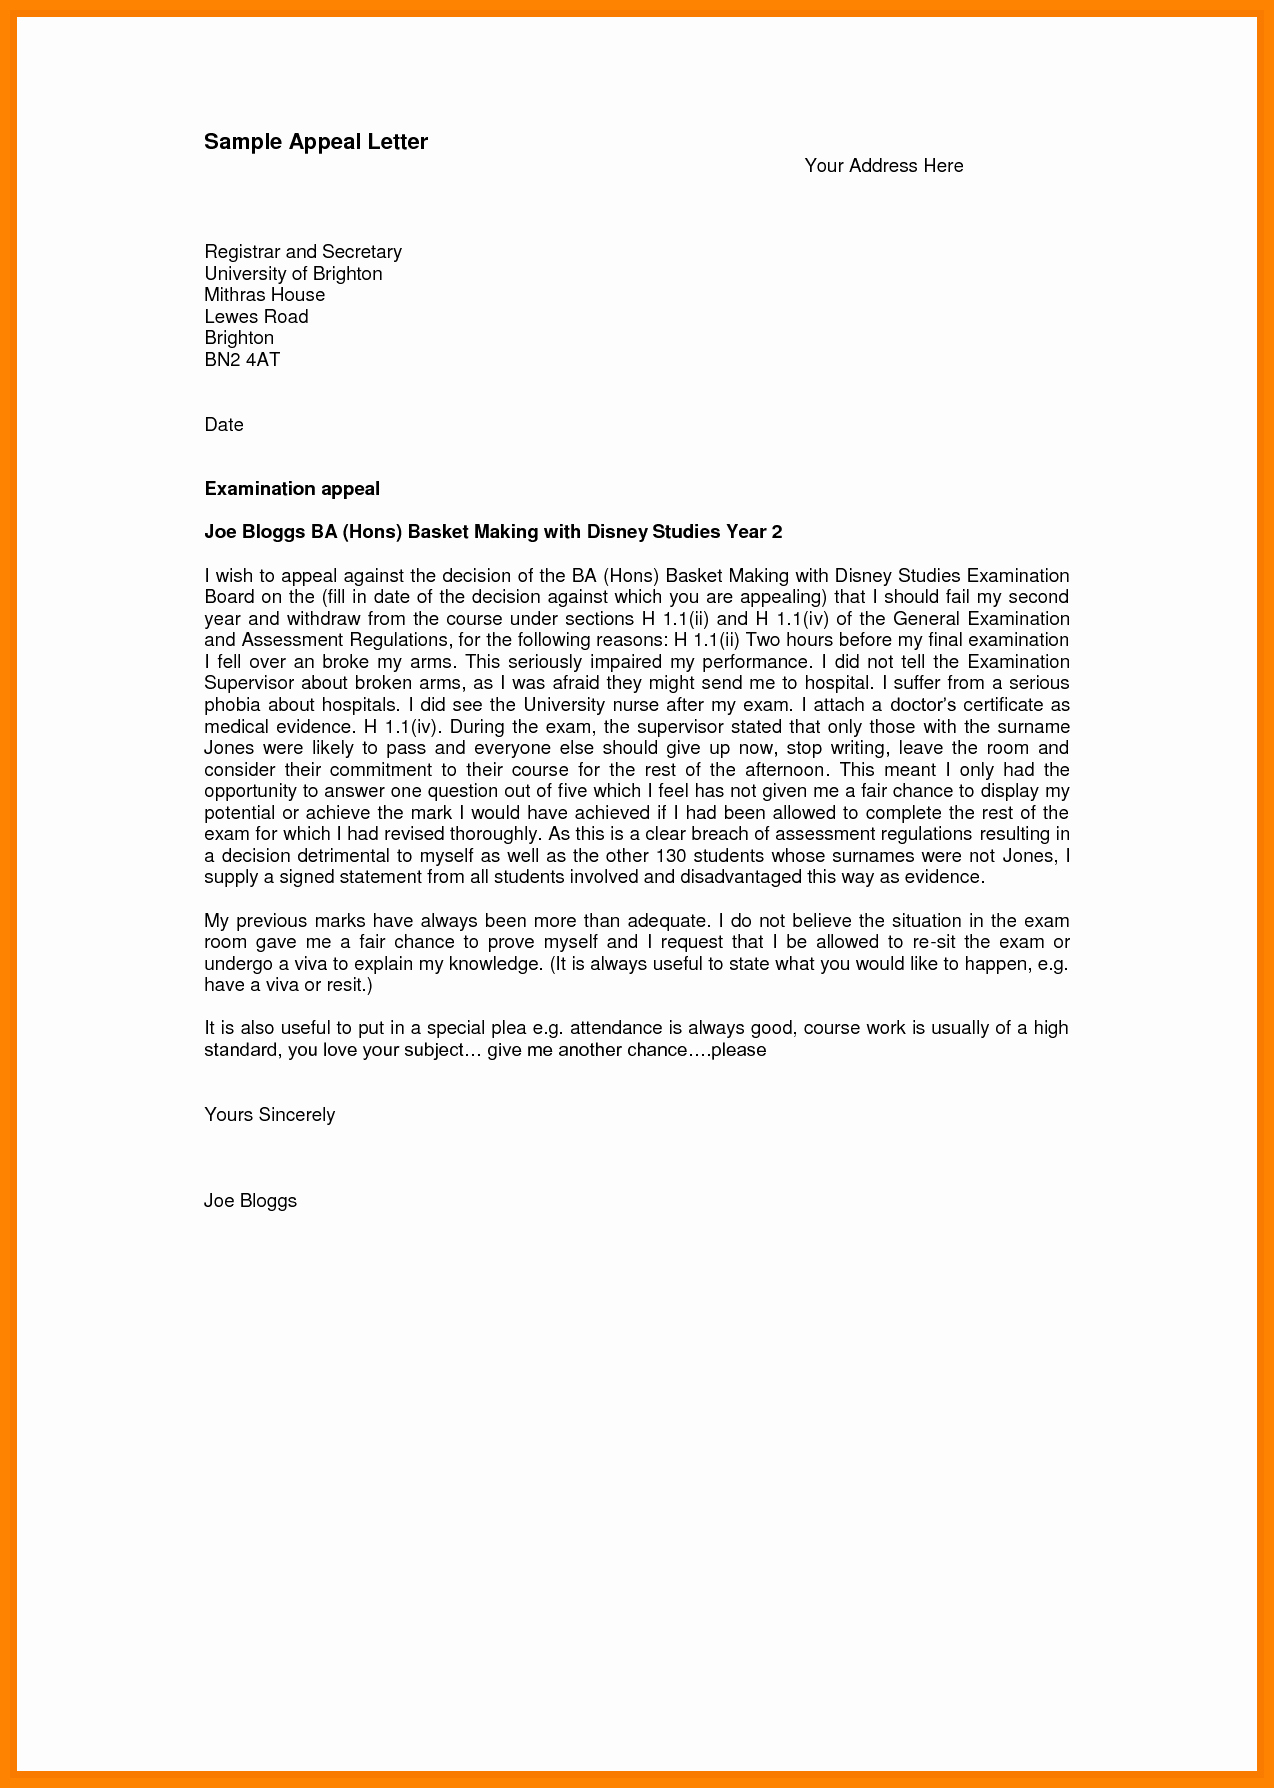 Sample Appeal Letter format Unique 7 Sap Appeal Letter Example